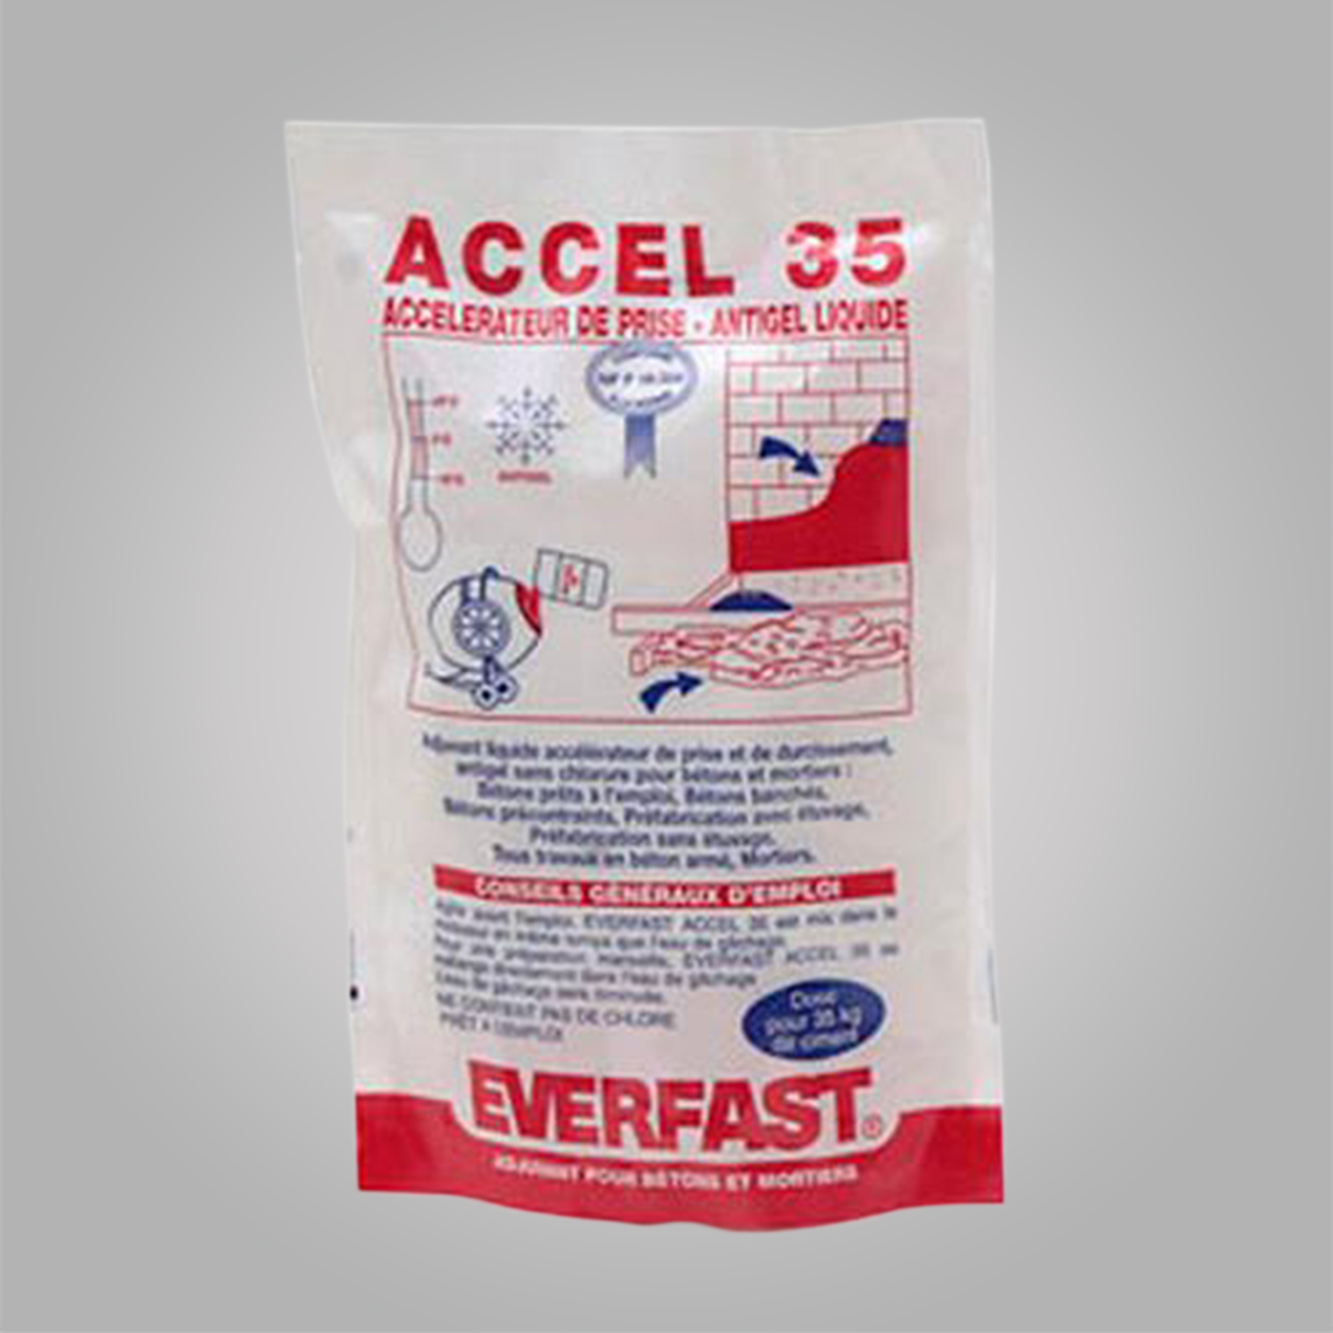 accel 35